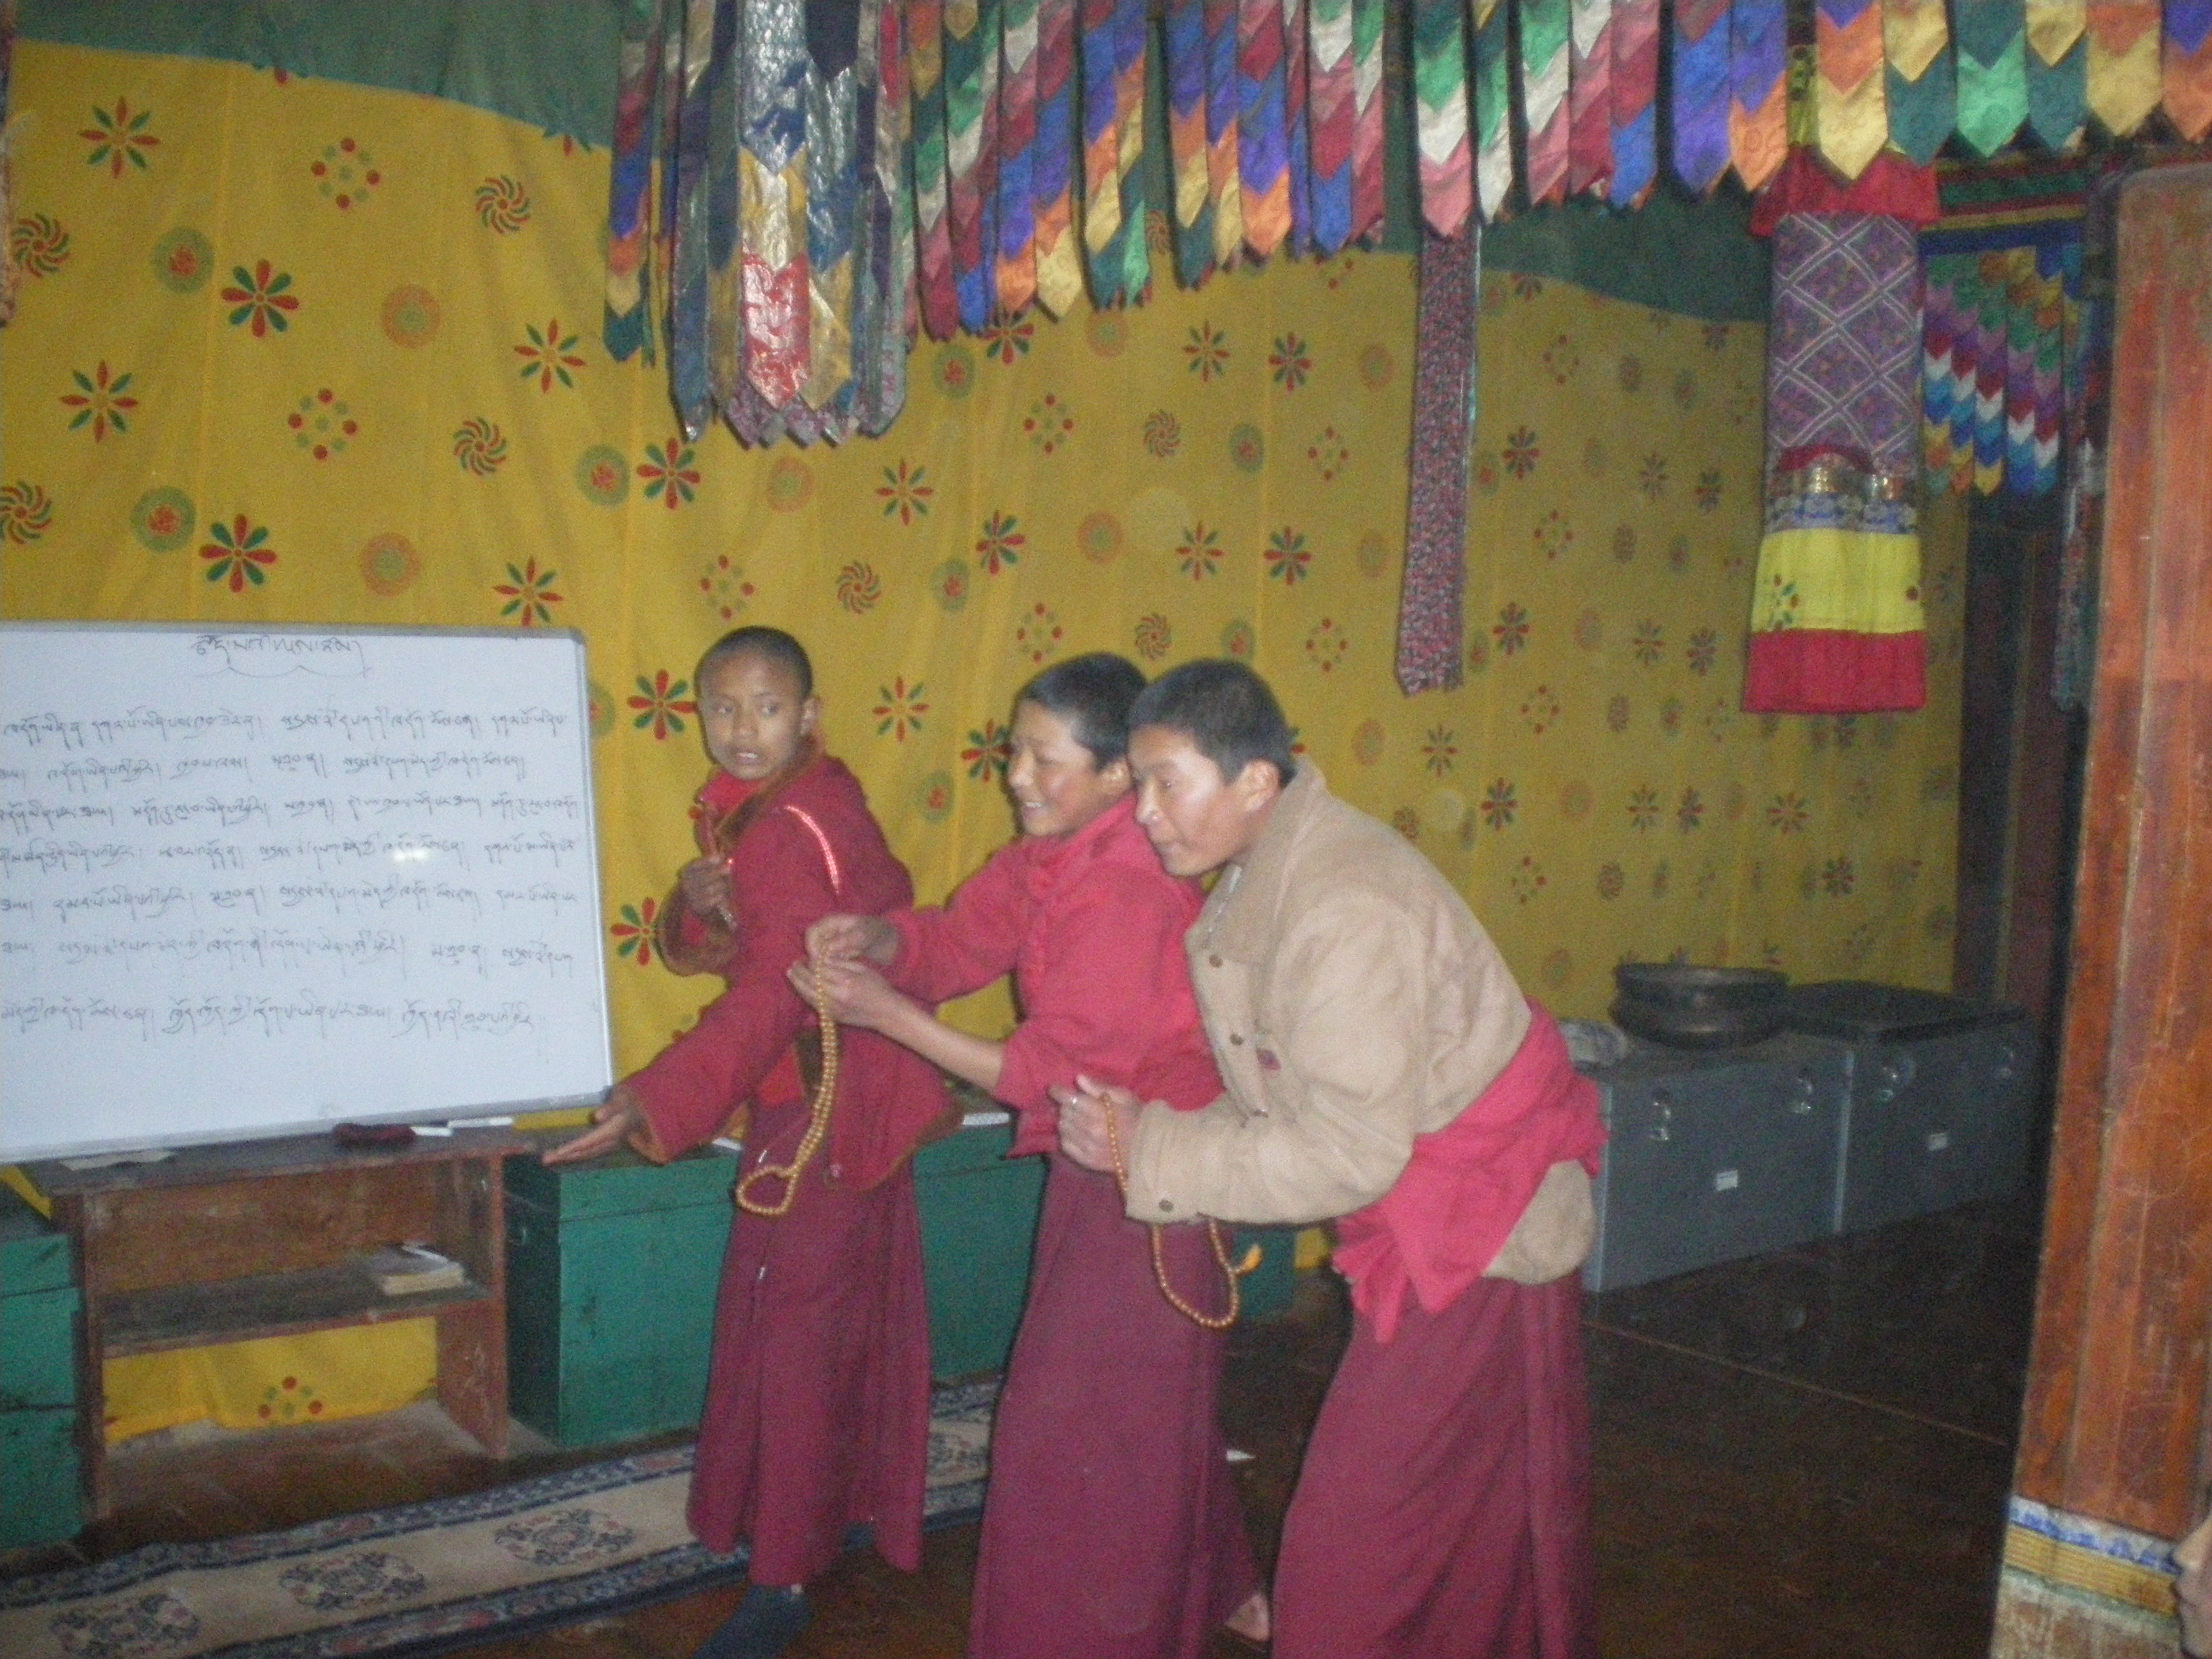 The monks learning the correct placement of the hands and mala beads.